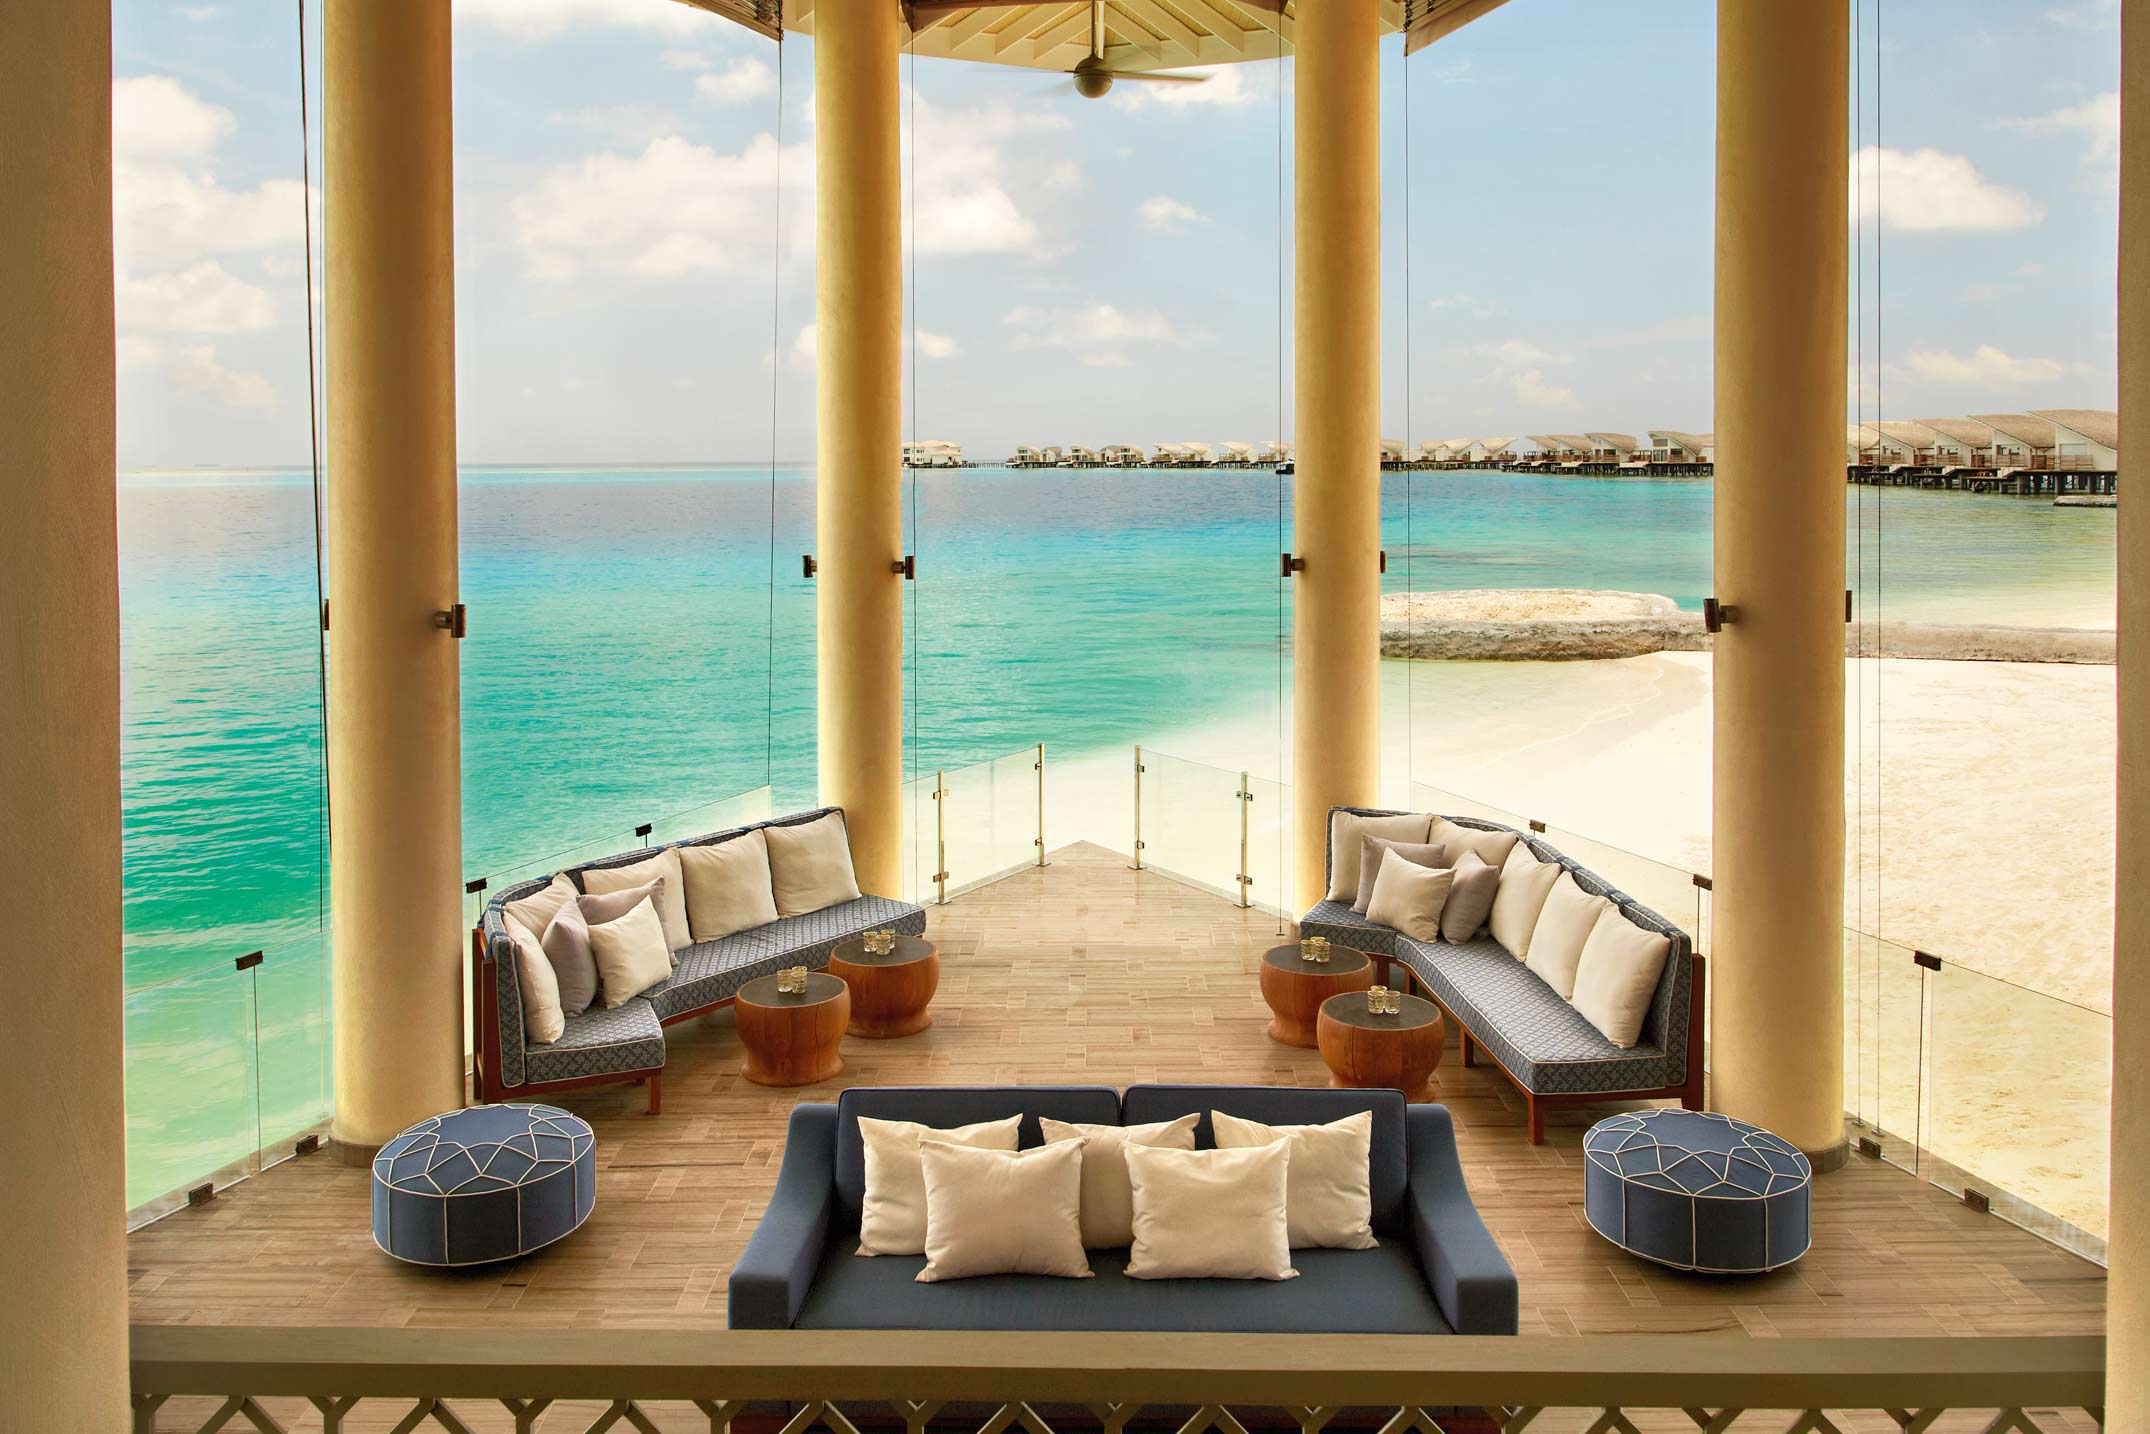 The royal couple is staying at one of the most exclusive resorts in the Indian Ocean - the five- star Cheval Blanc Randheli Hotel on Noonu Atoll(1)